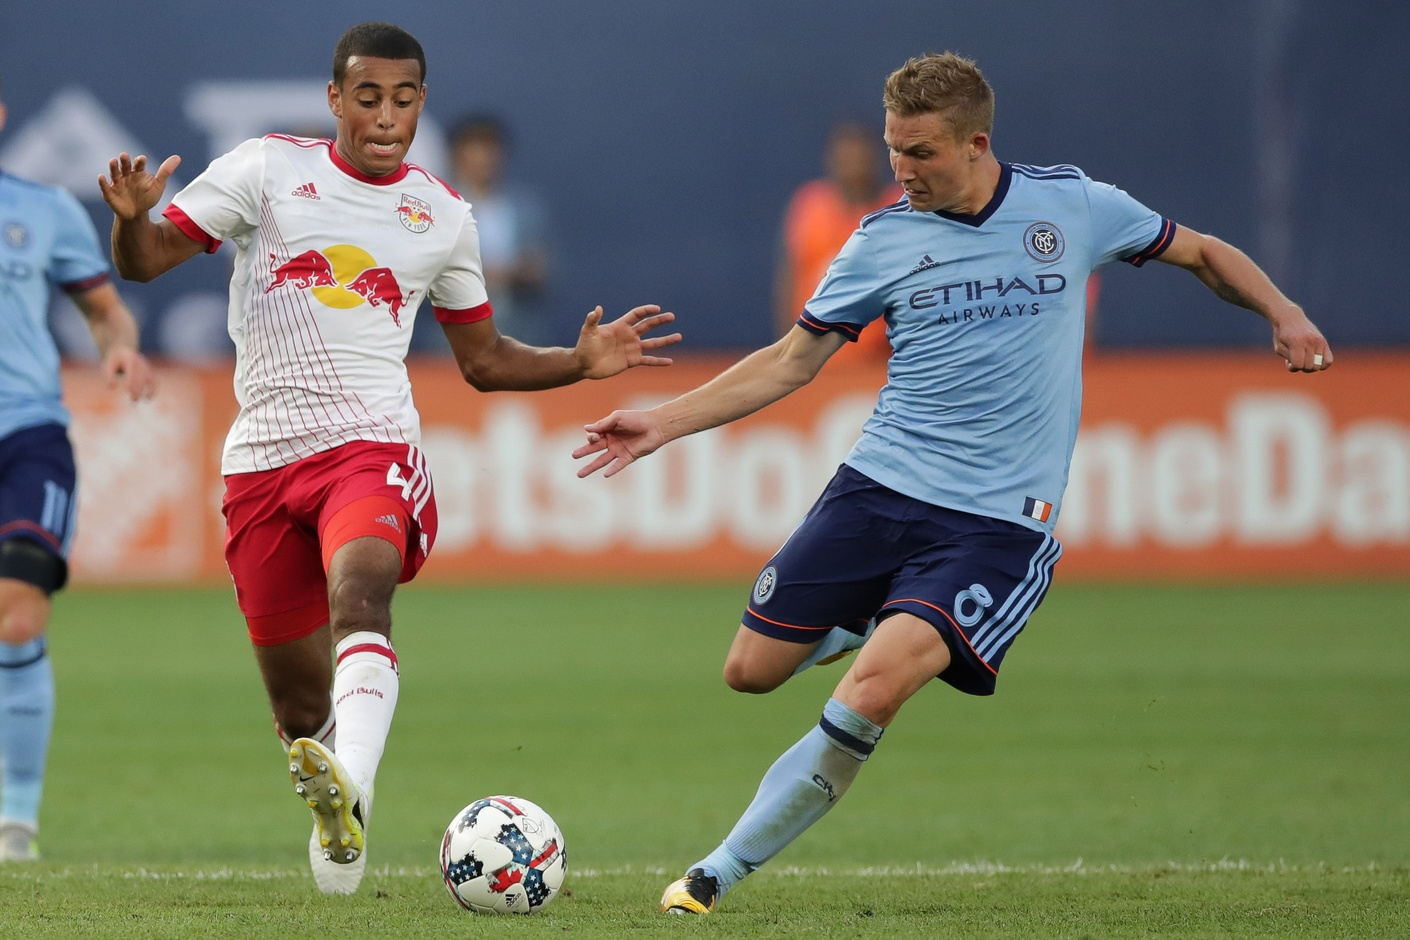 New York, NY, USA; New York City FC midfielder Alexander Ring (8) shoots the ball as New York Red Bulls midfielder Tyler Adams (4) defends during the second half at Yankee Stadium. Credit: Vincent Carchietta-USA TODAY Sports